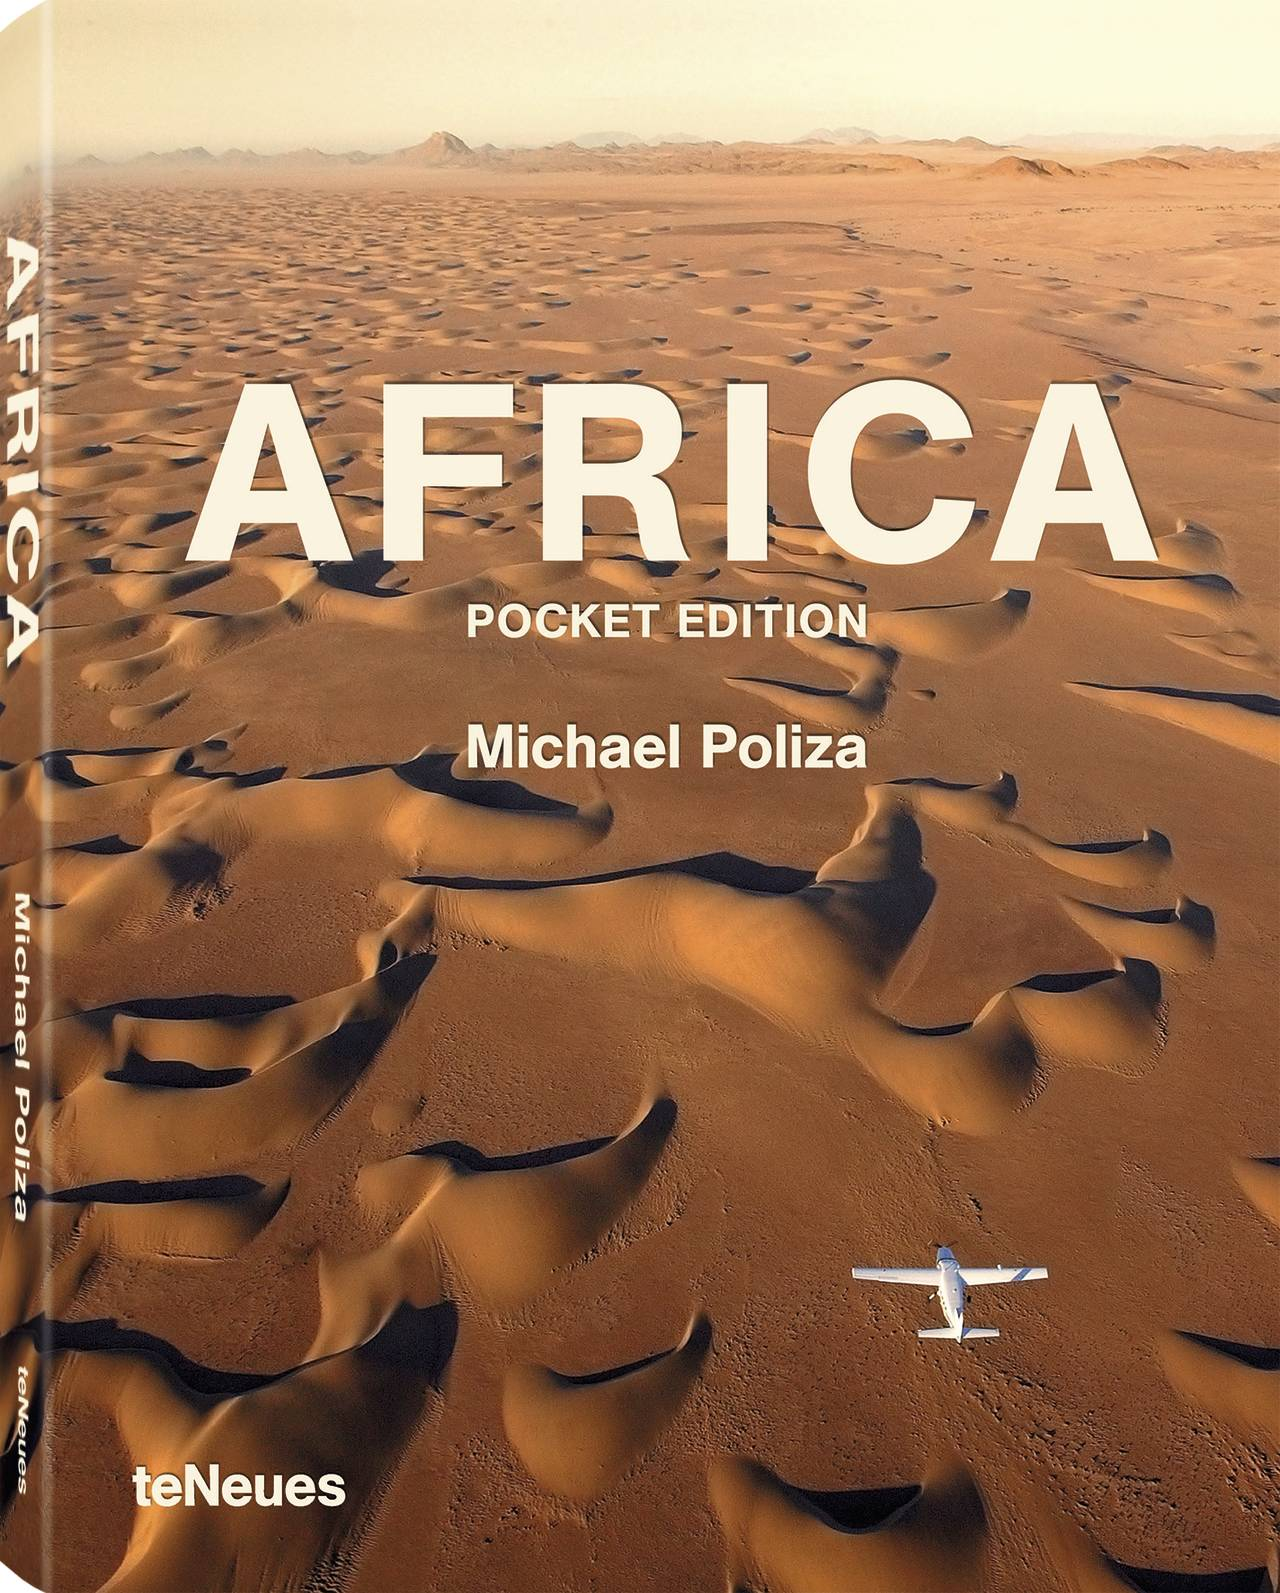 © AFRICA by Michael Poliza - Pocket Edition, published by teNeues, www.teneues.com. Flight to nowhere, Barchan Dunes, Skeleton Coast, Namibia, Photo © Michael Poliza. All rights reserved. www.michaelpoliza.com